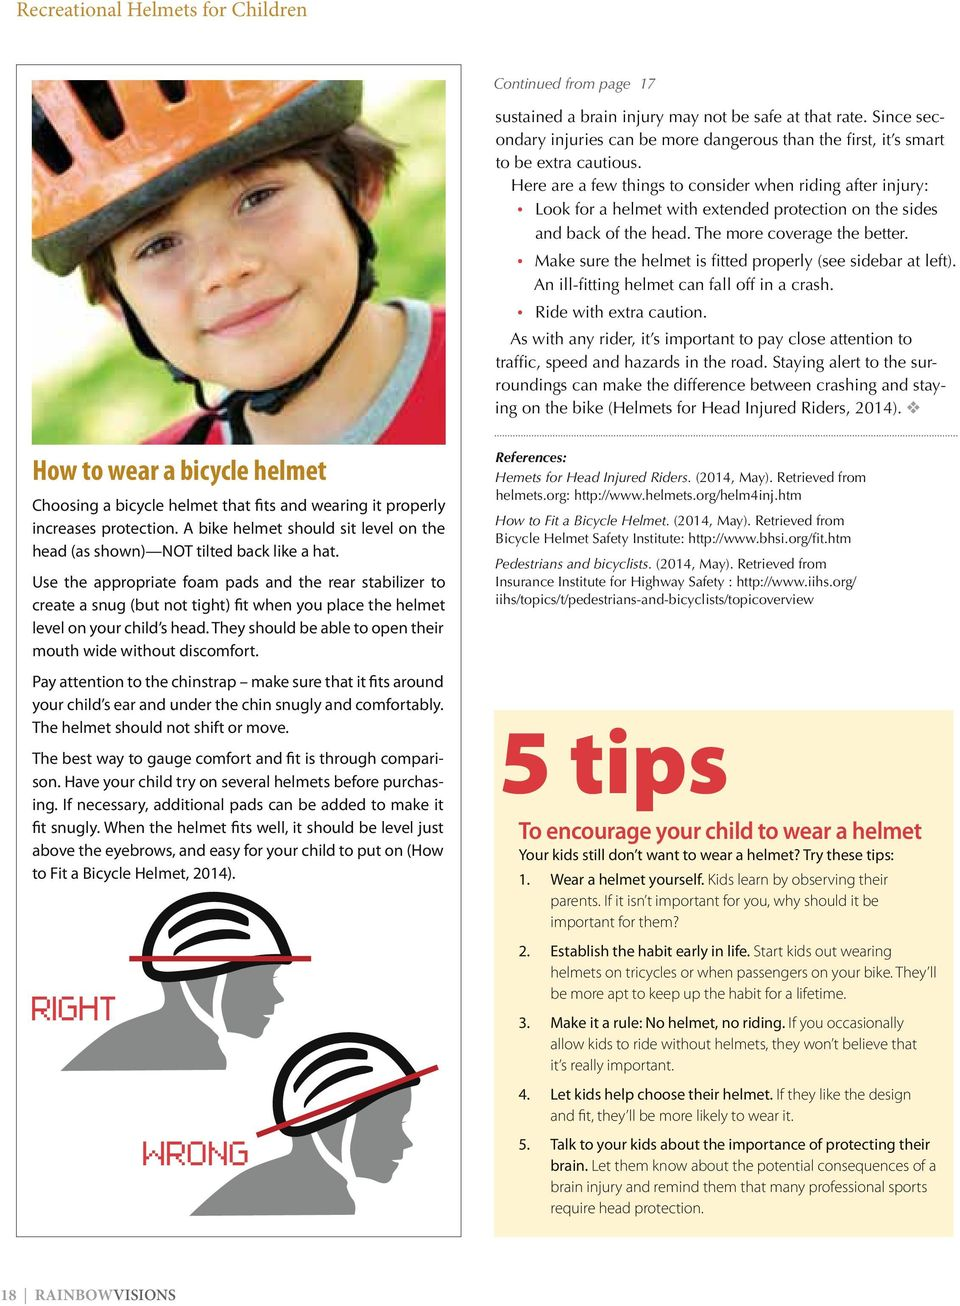 Here are a few things to consider when riding after injury: Look for a helmet with extended protection on the sides and back of the head. The more coverage the better.